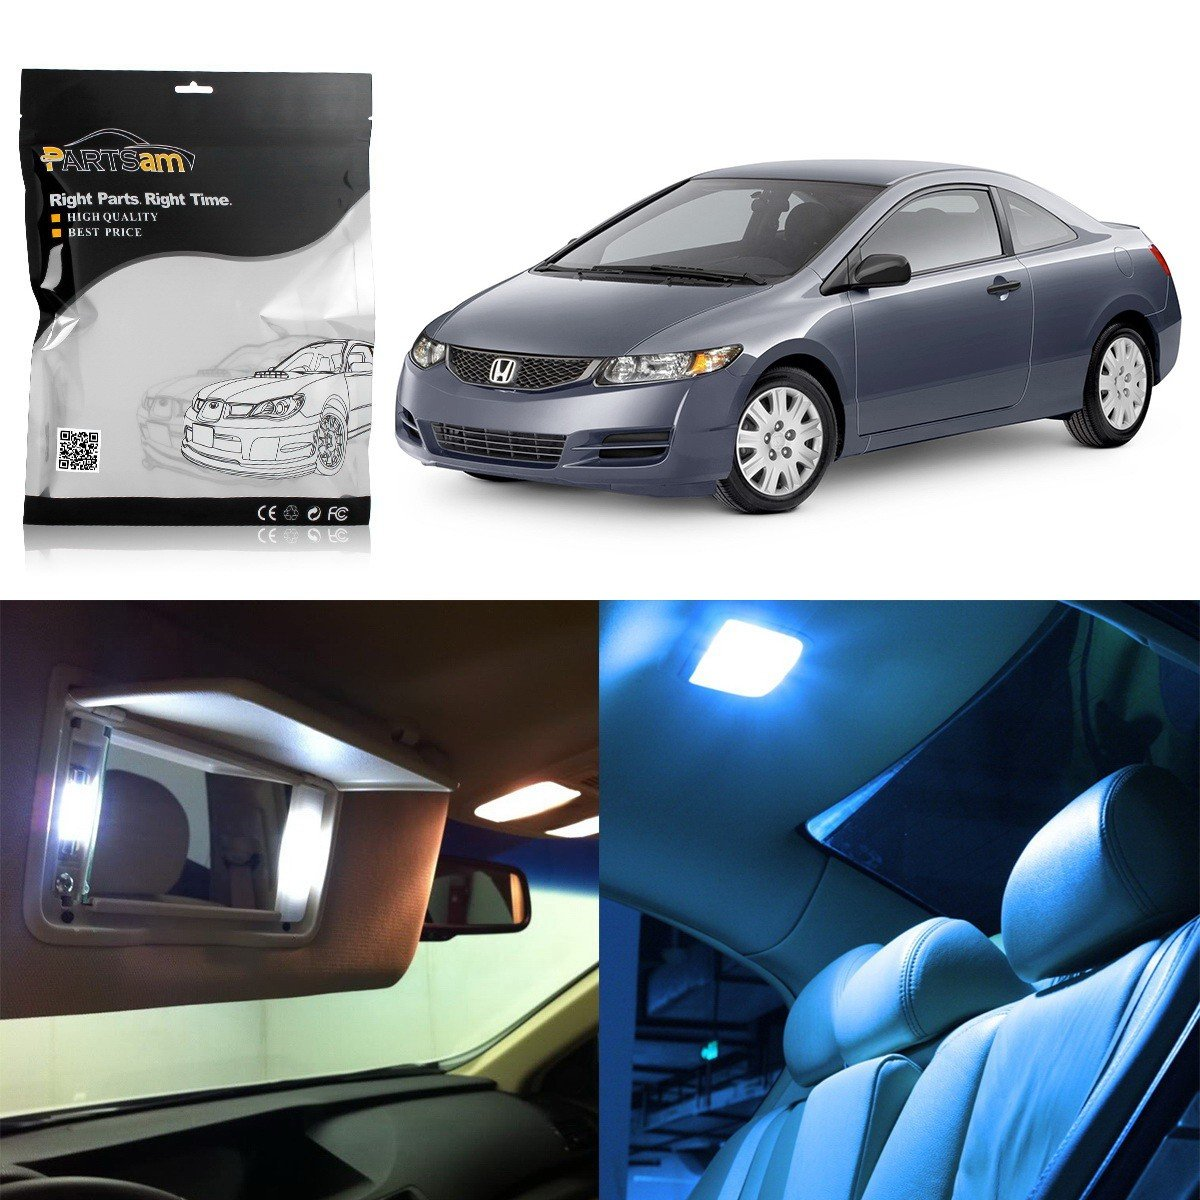 Partsam 2006-2012 Honda Civic Coupe Sedan Ice Blue Interior LED Lights Package Kit + Gift Tool (6 Pieces)